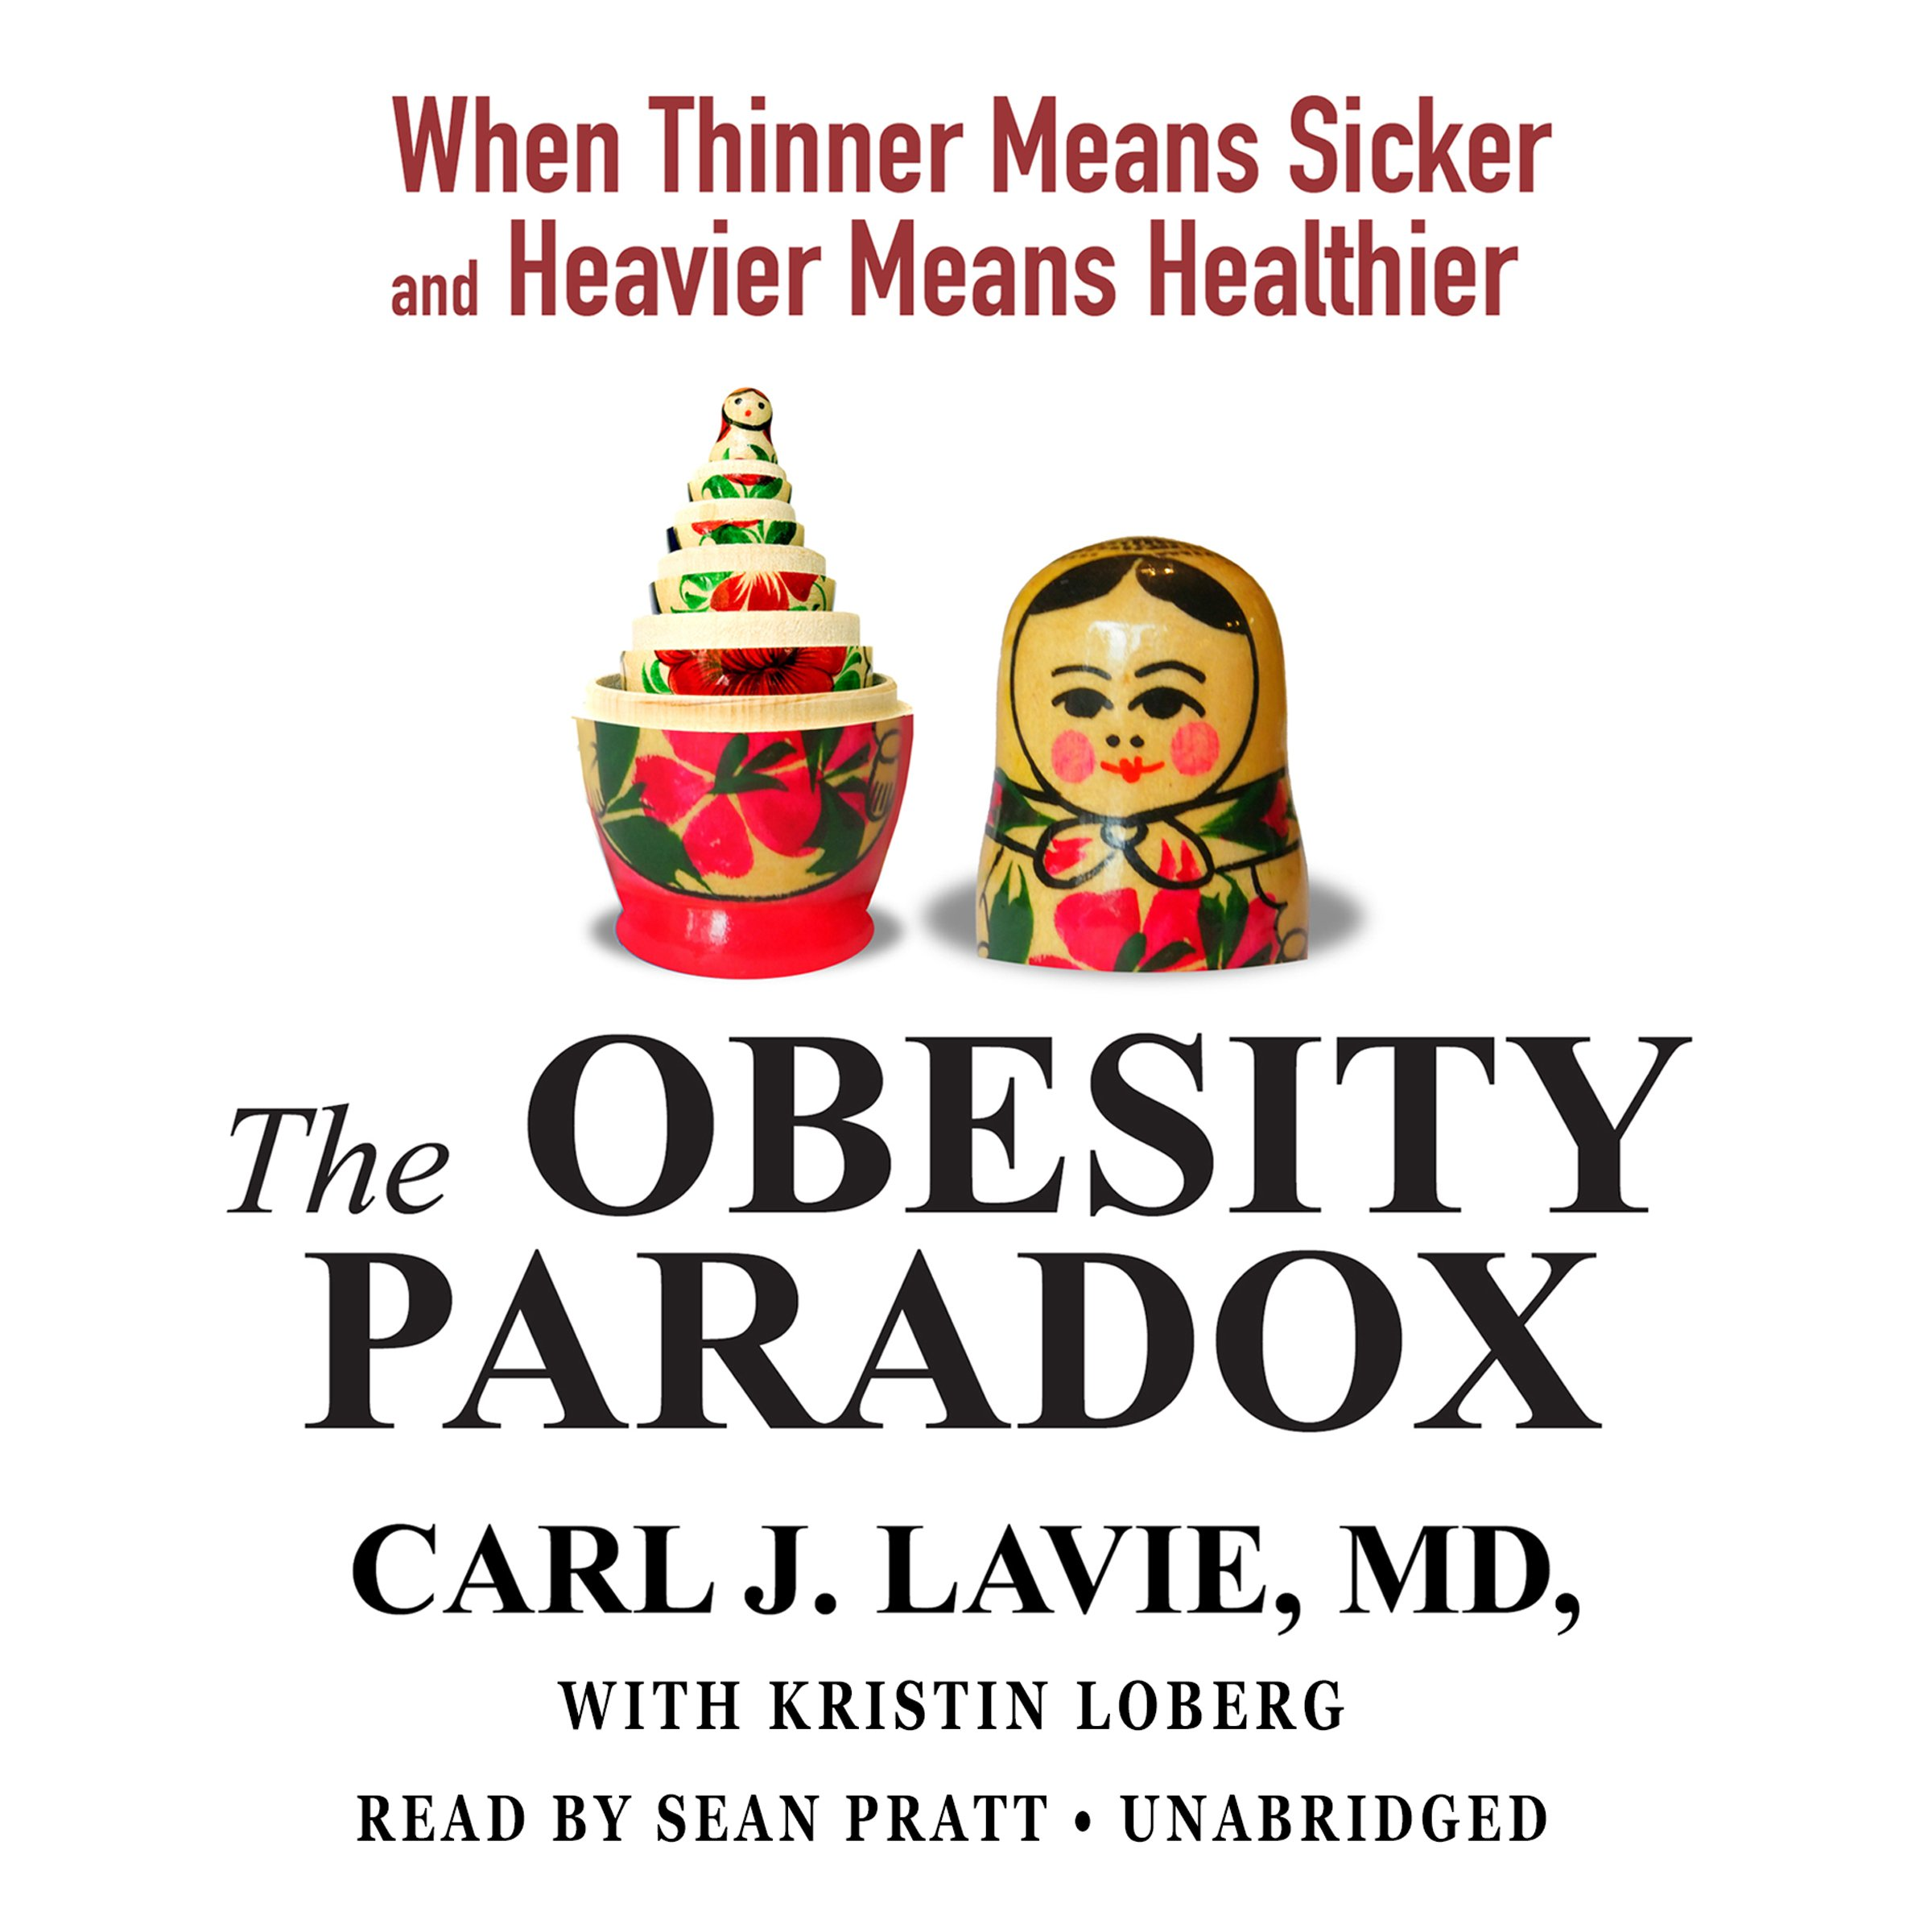 picture The Obesity Paradox: 4 Times Its Healthier To Be Overweight